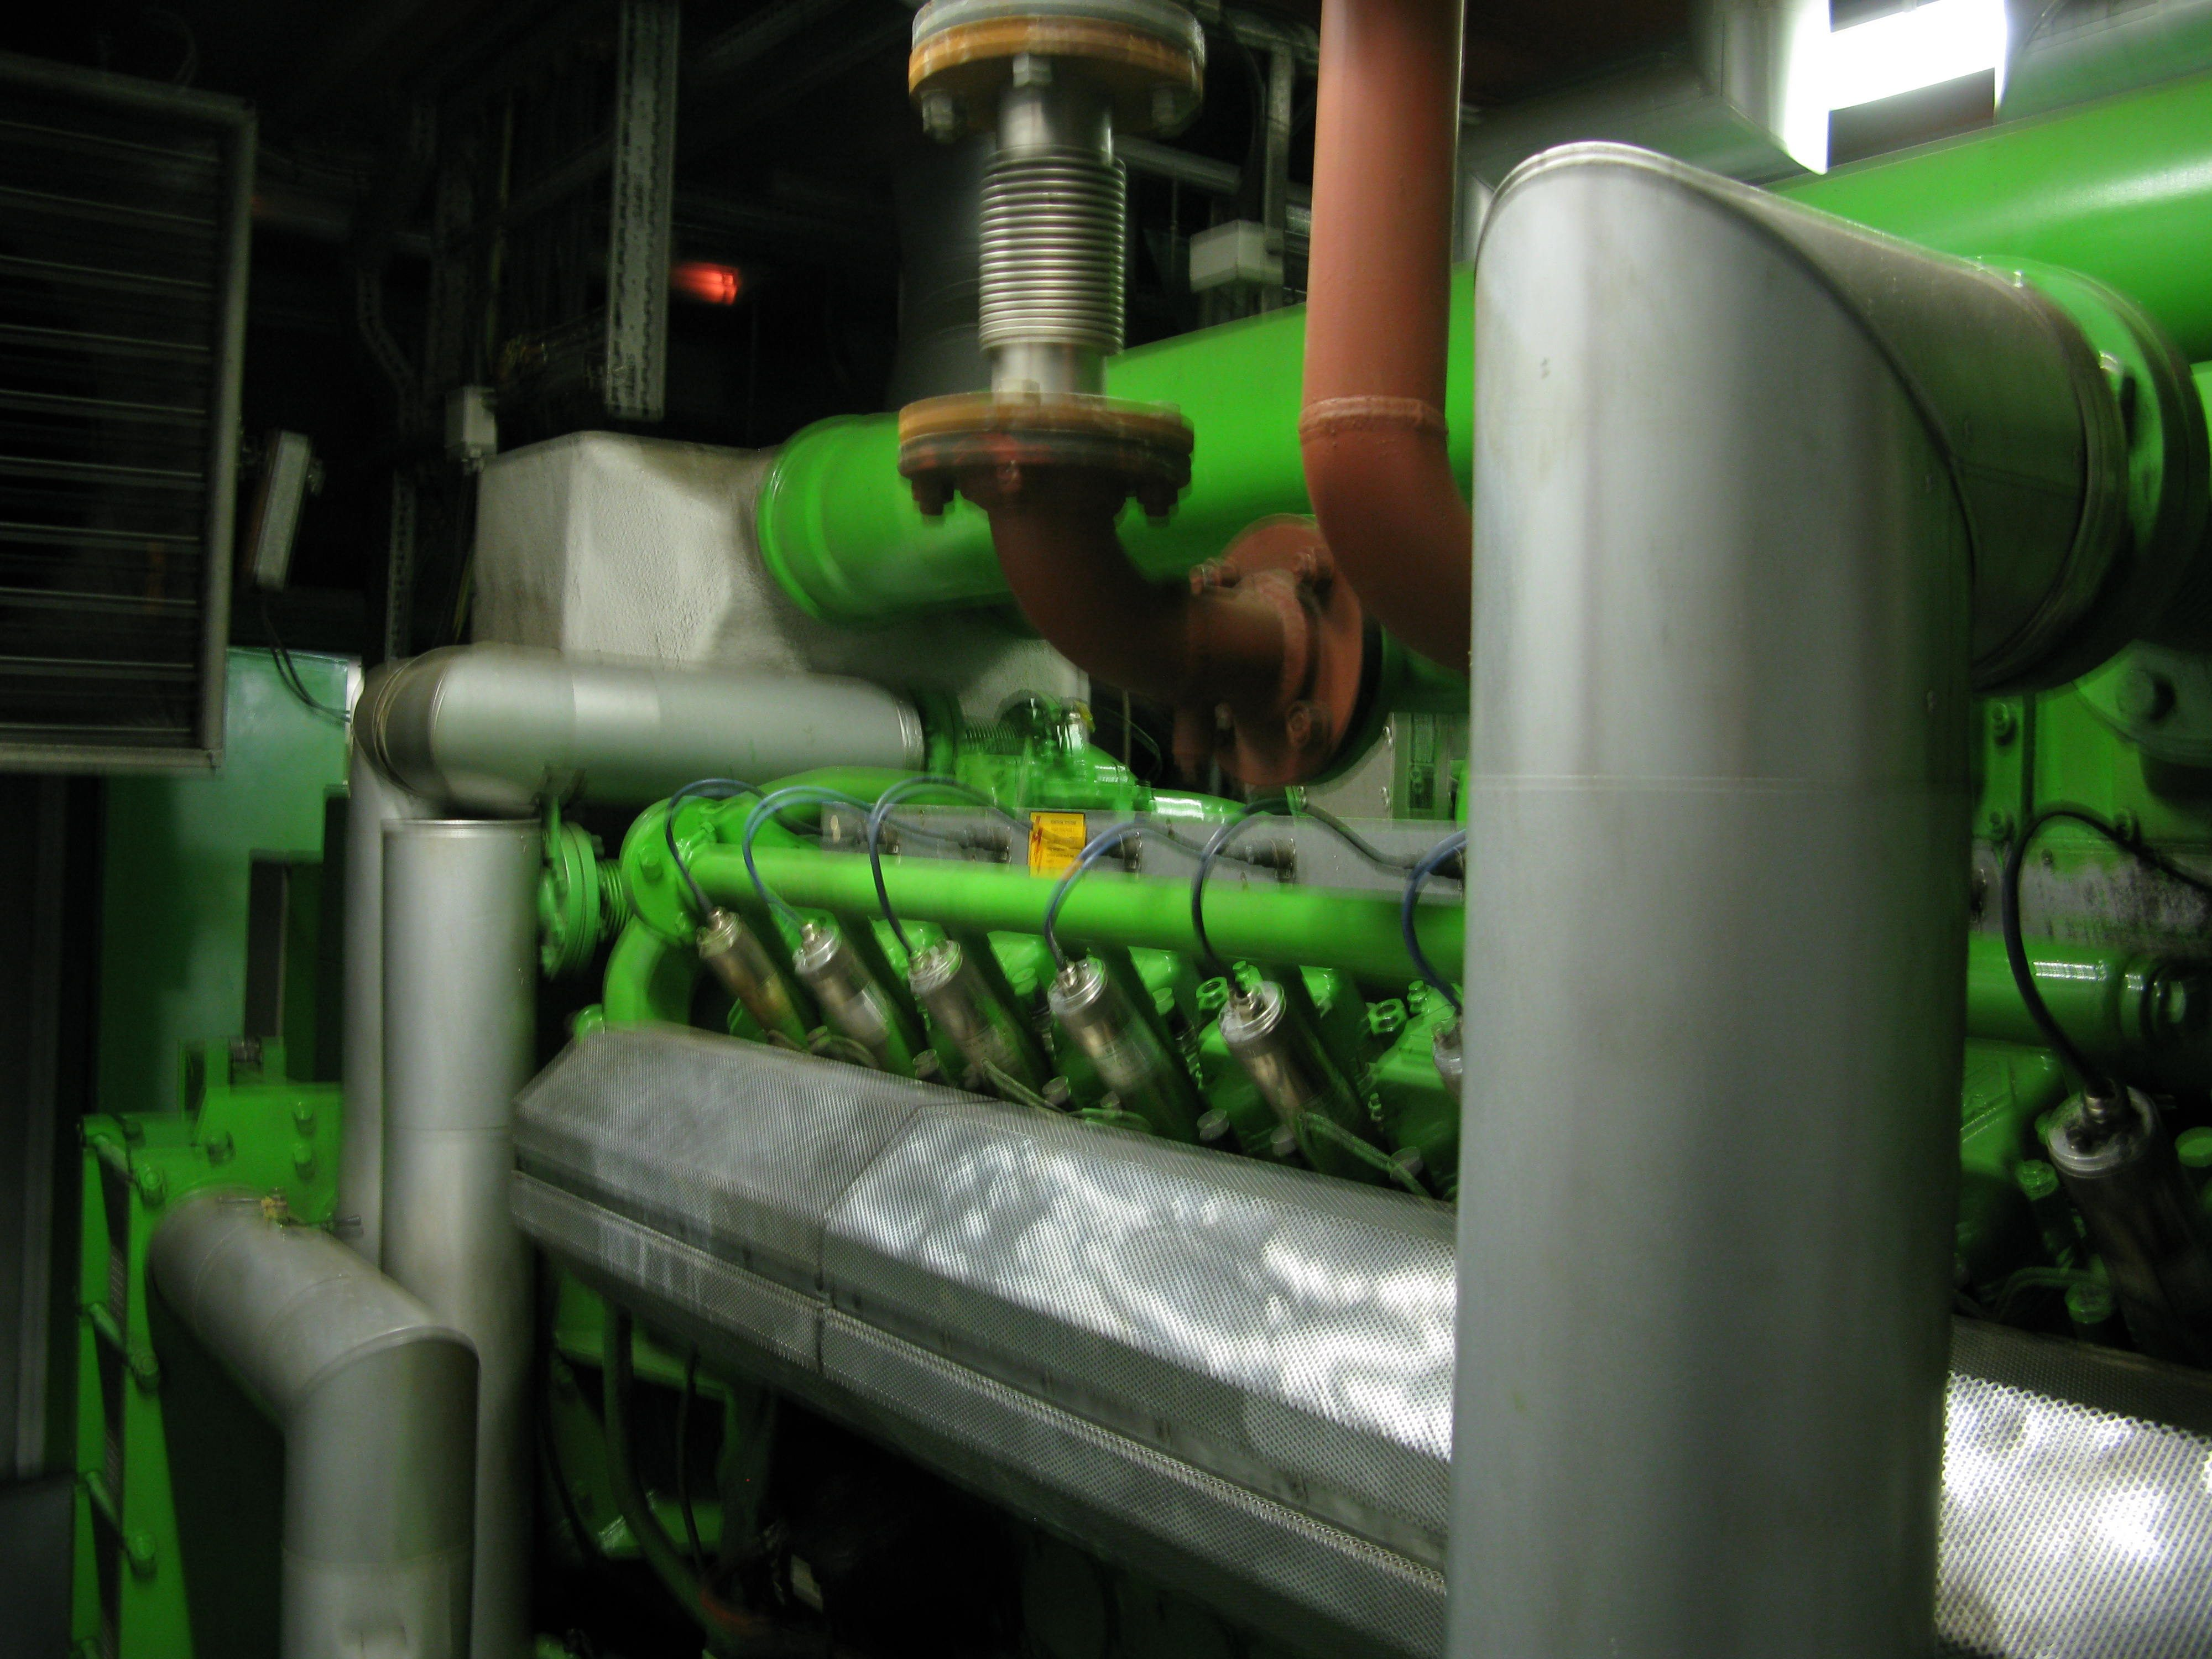 One of two Jenbacher CHP engines